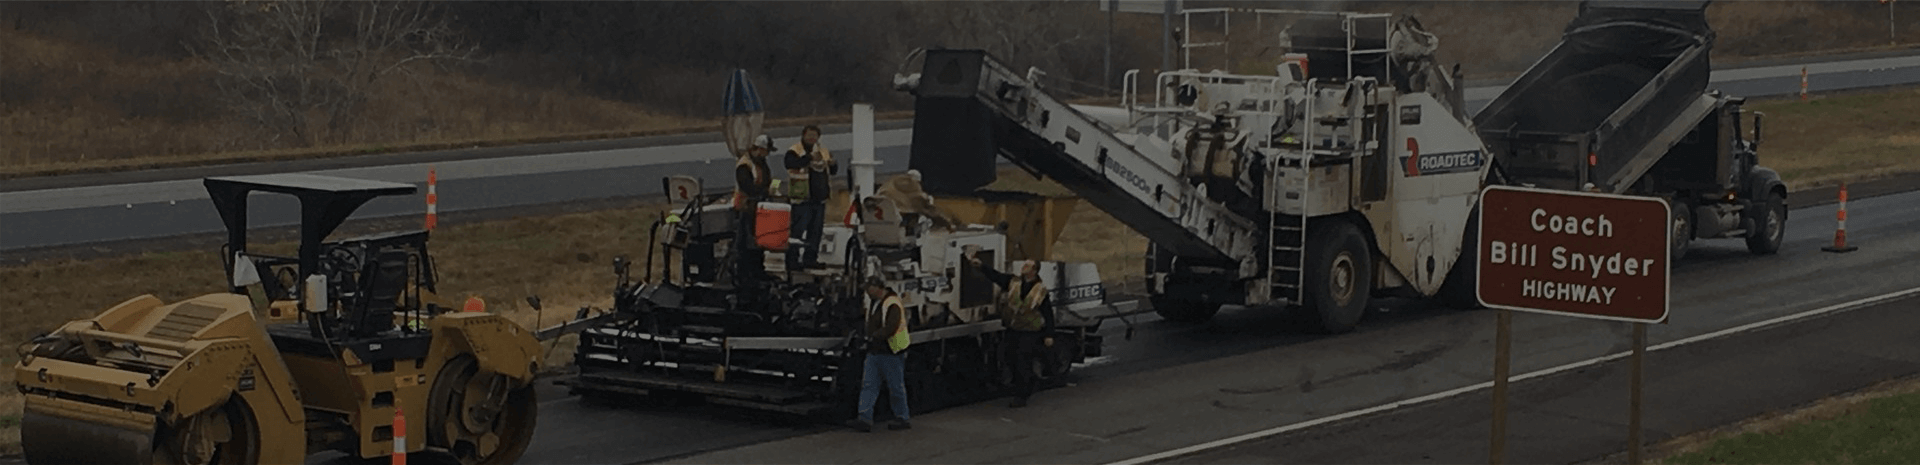 photo of paving operation in-progress on coach bill snyder highway